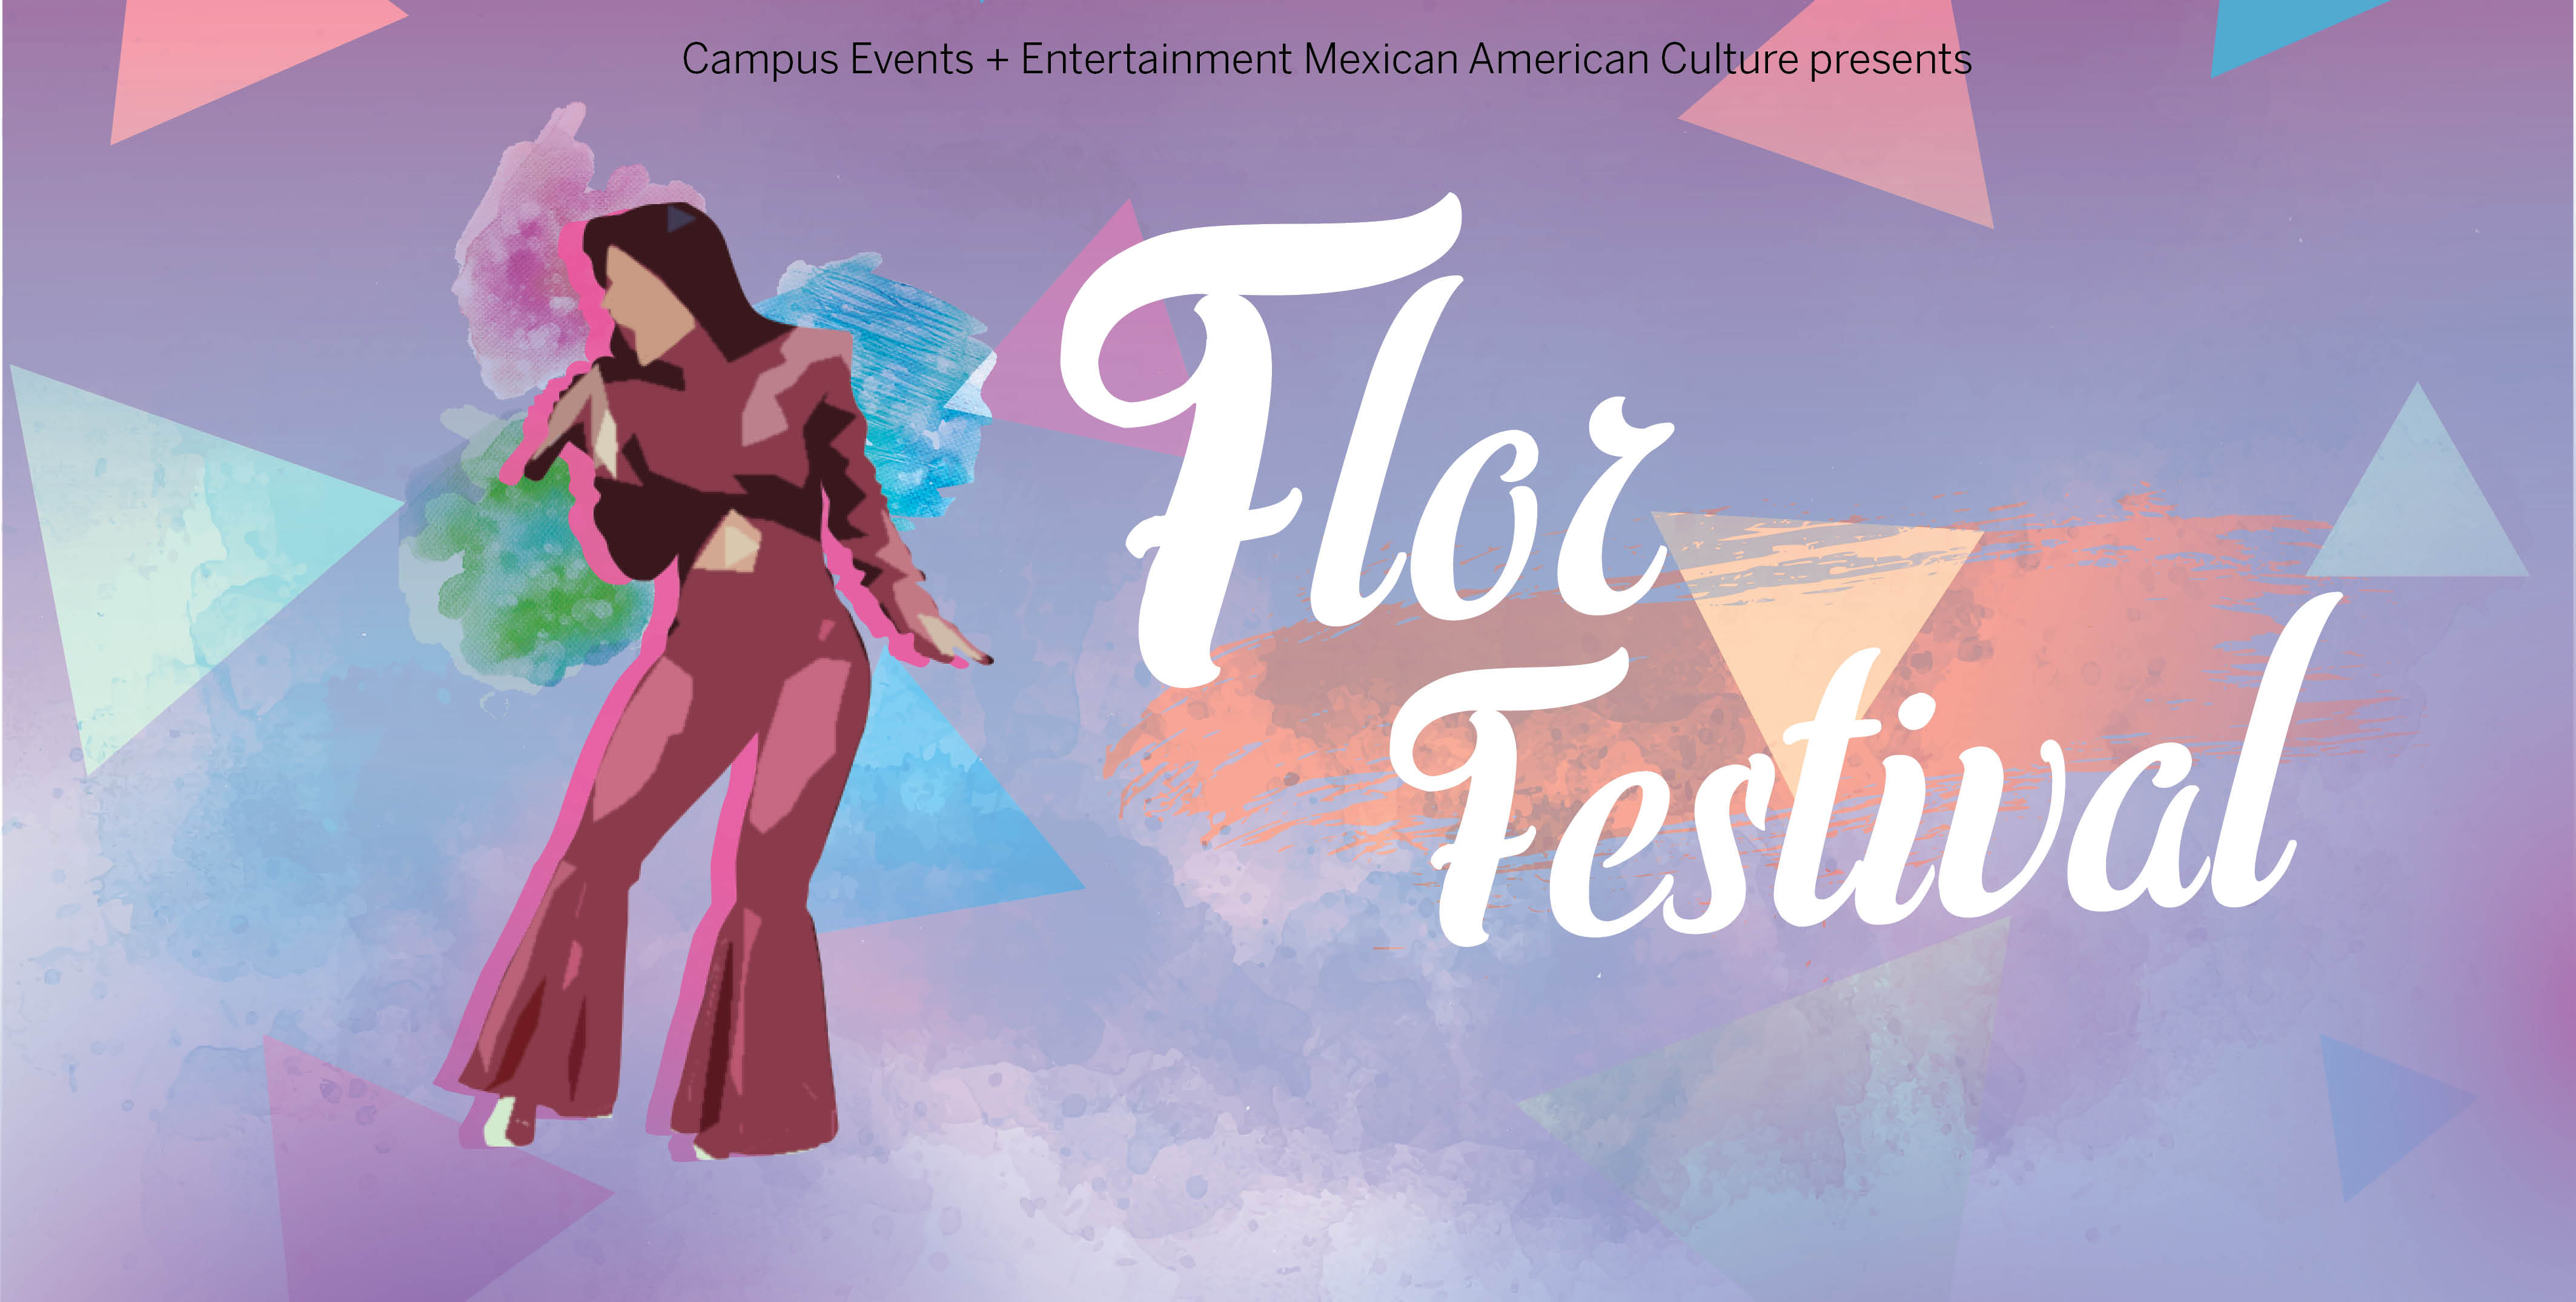 Colorful advertisement for Flor Festival with a picture of Selena